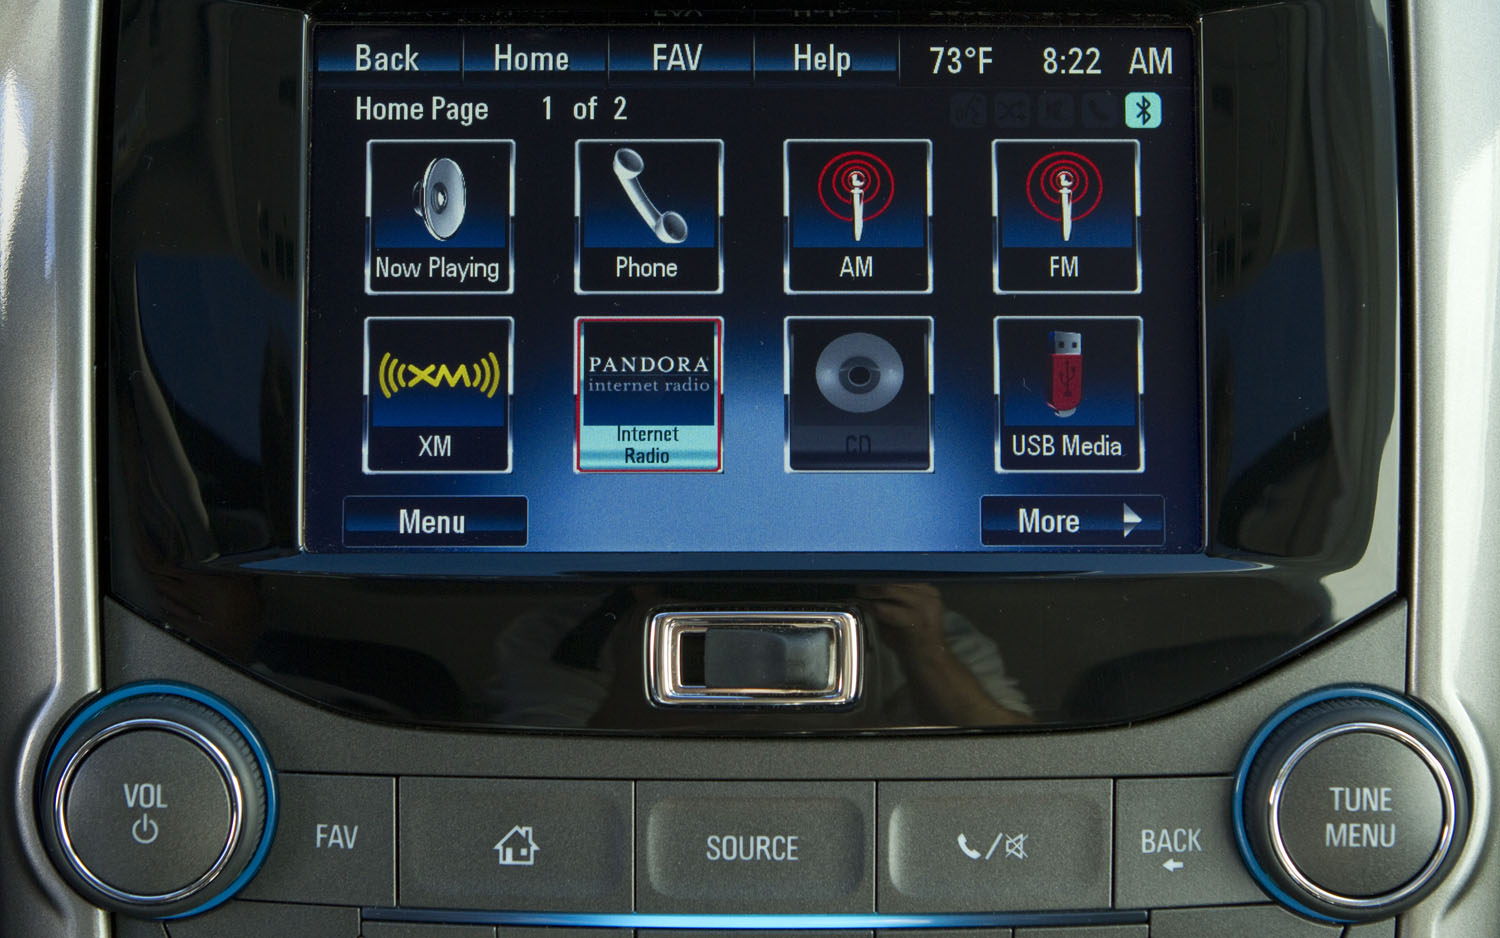 Chevy Malibu Mpg >> Quick Look: The 2013 Chevrolet Malibu's Interior, MyLink Voice Infotainment System